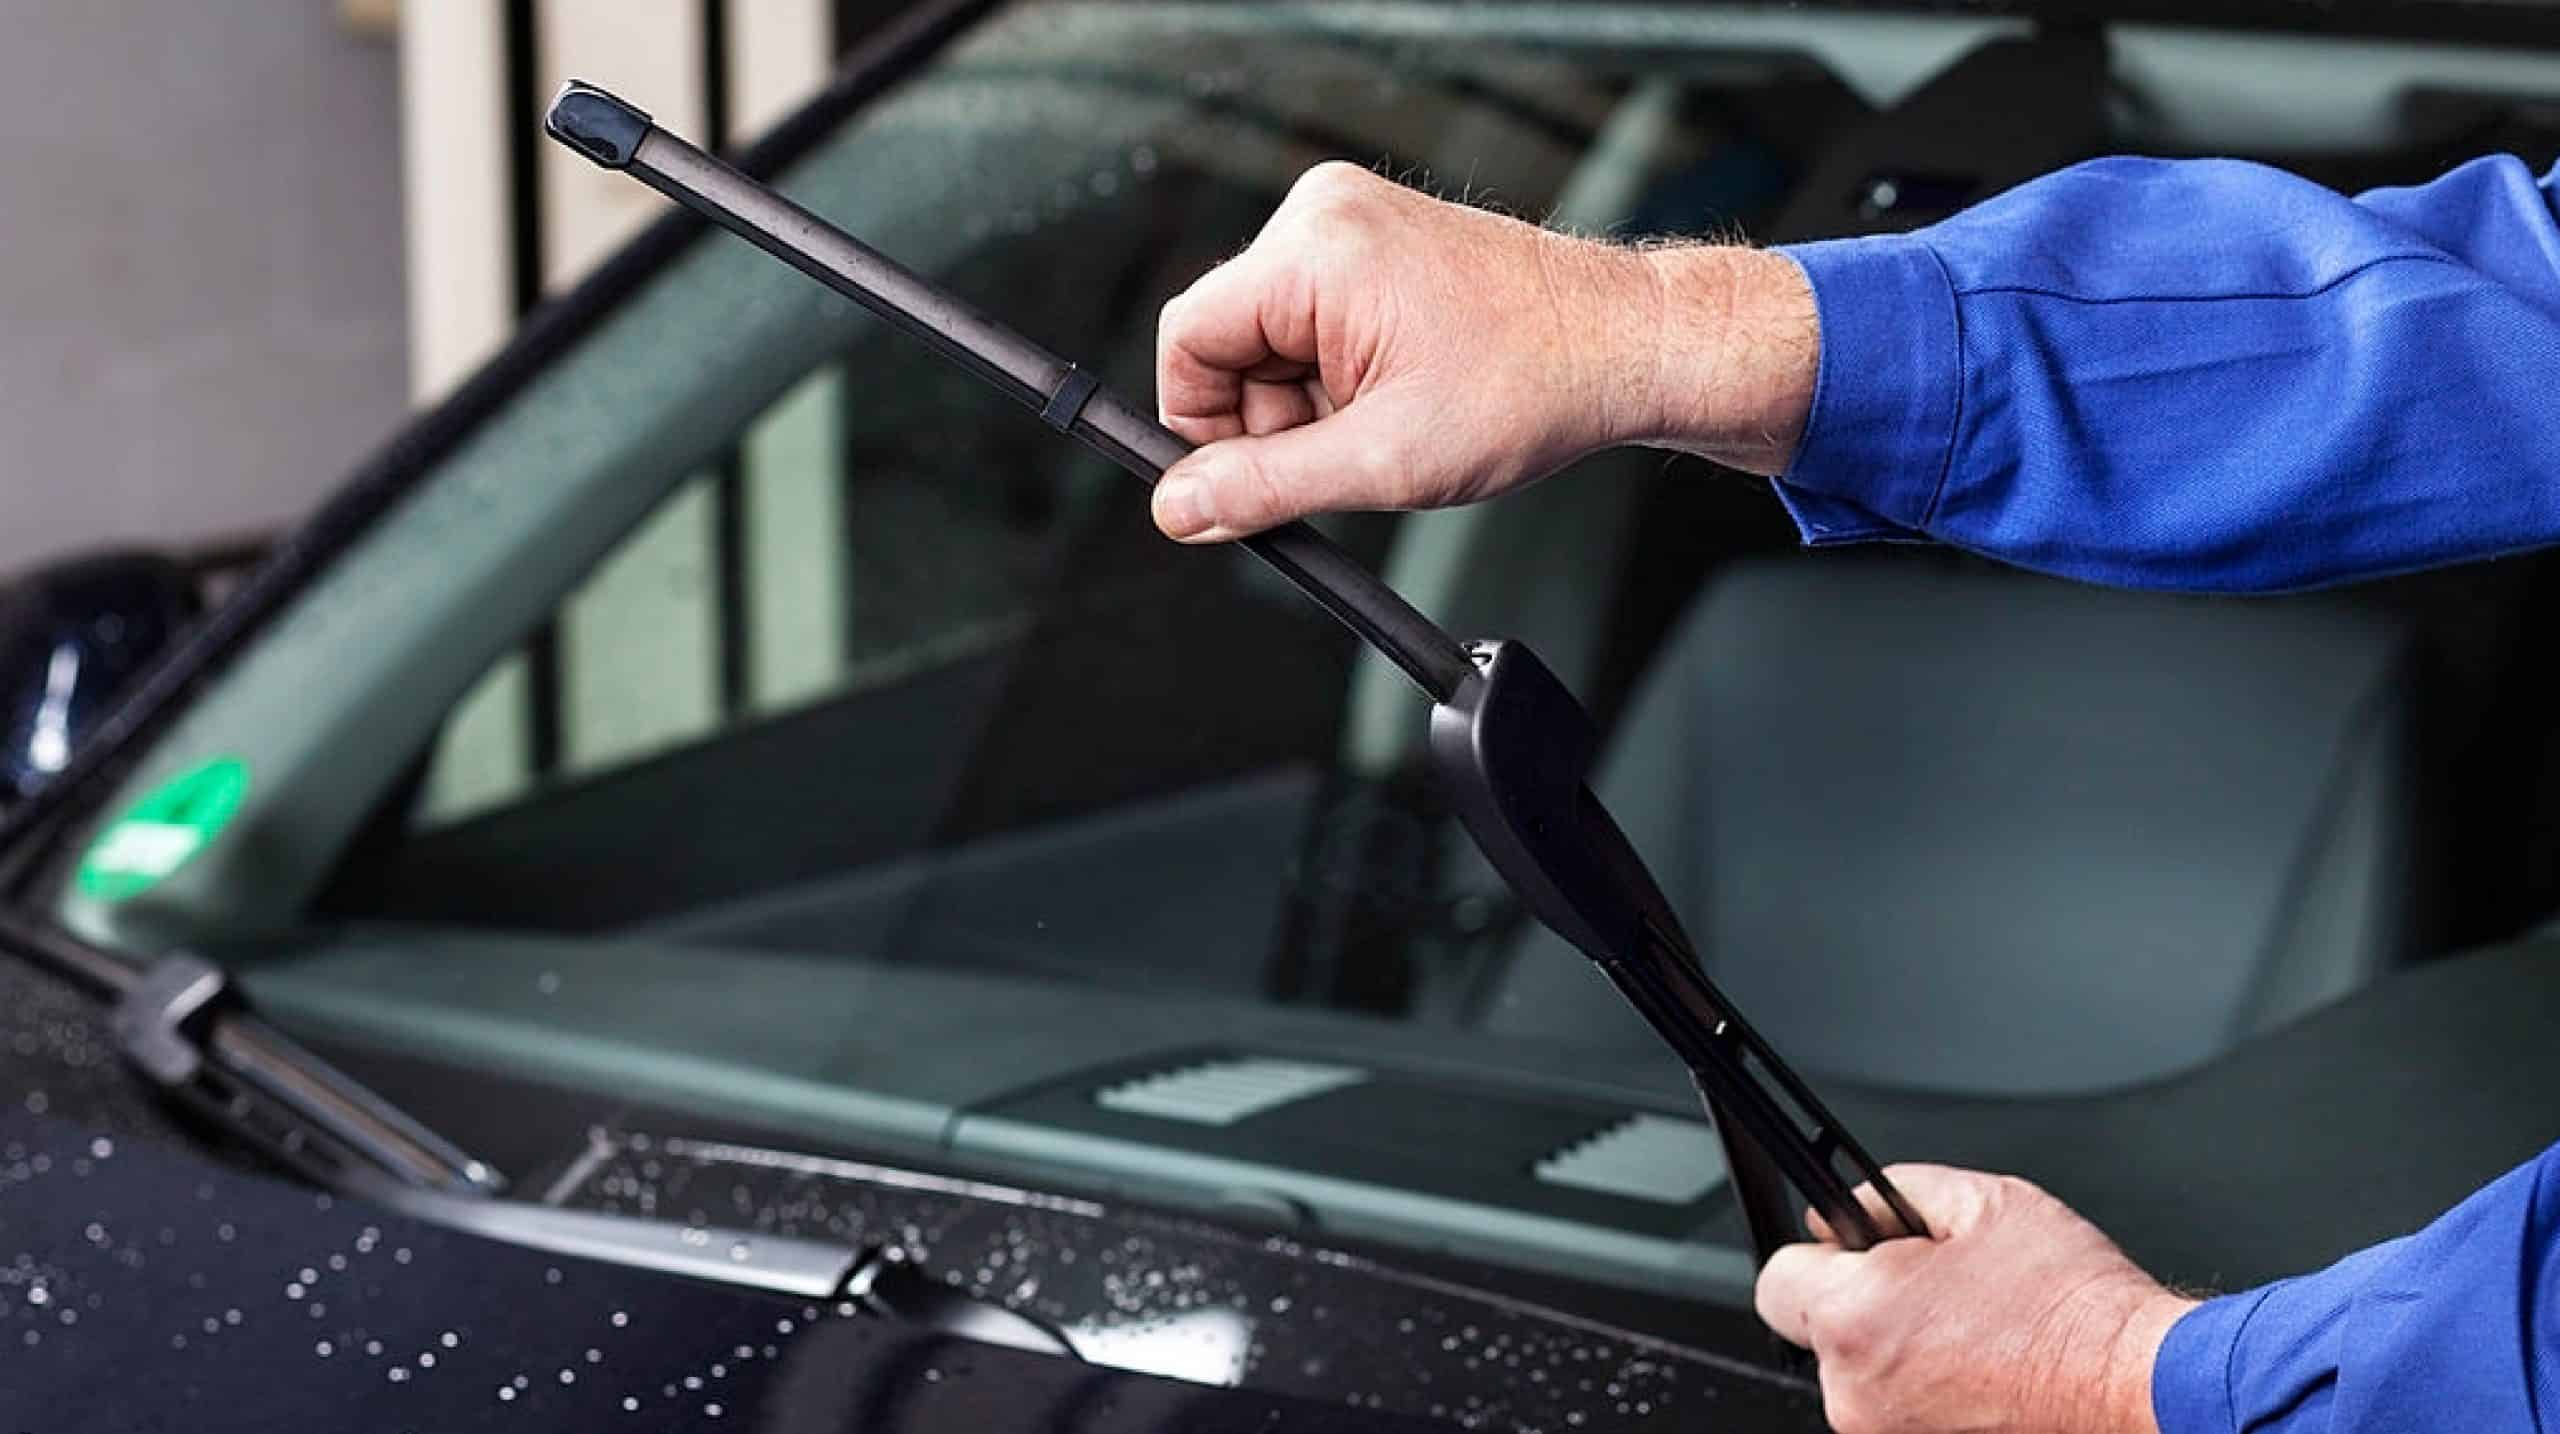 Wiper Blades: Types, Brands, Buying Tips & FAQS